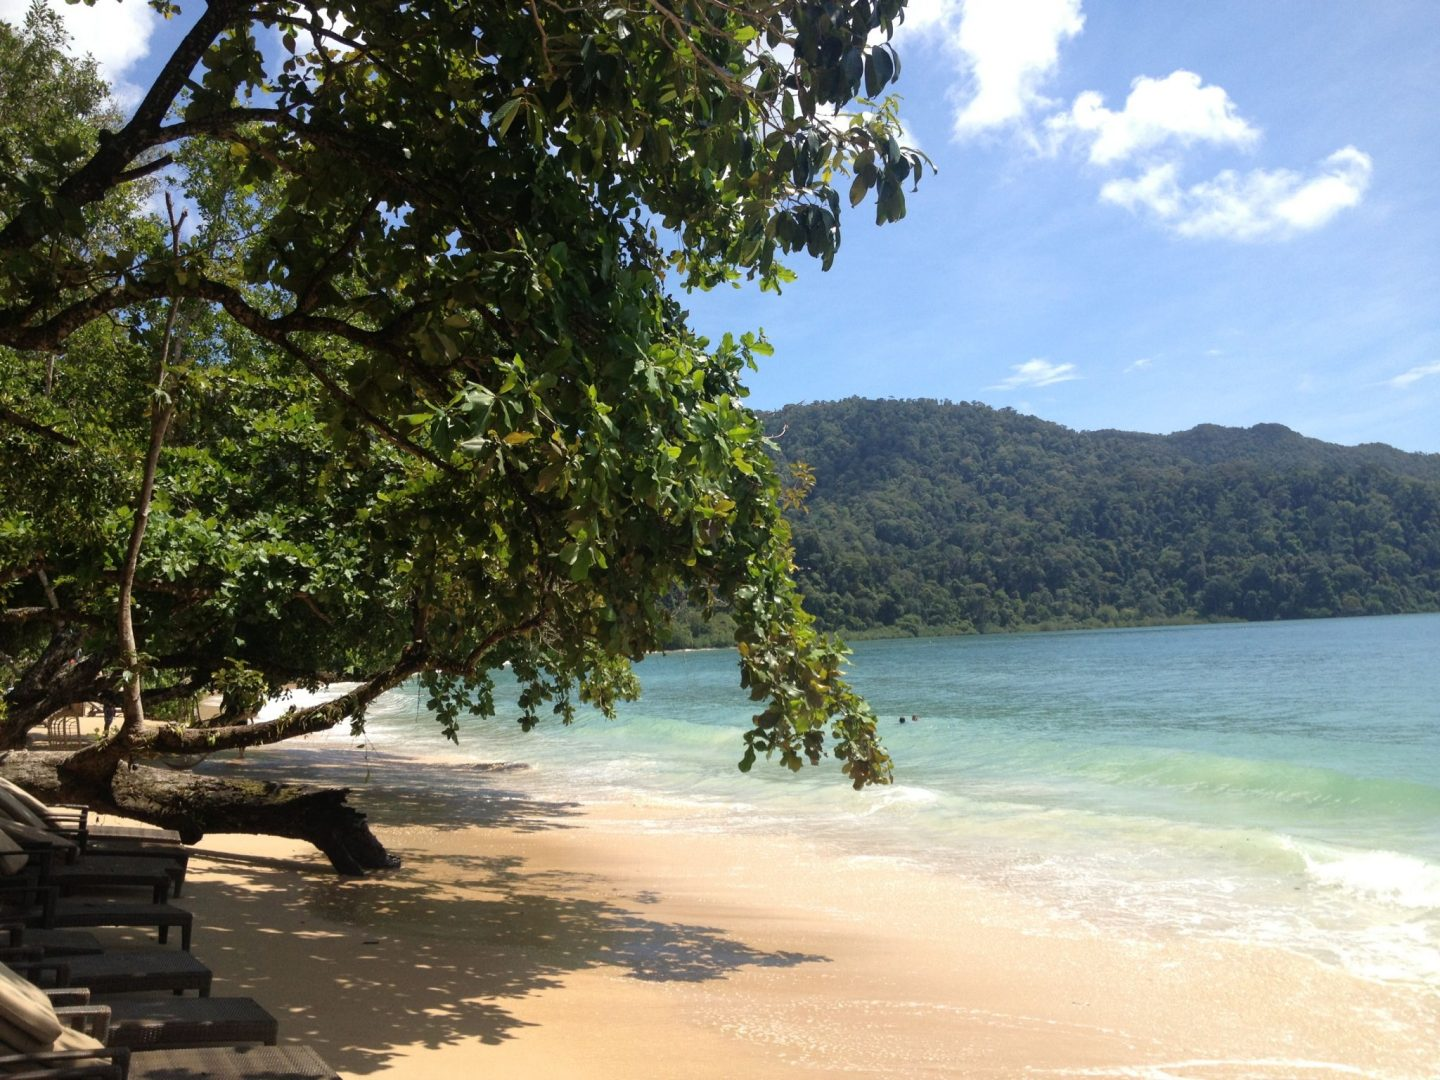 Langkawi, Malaysia highlights – what to see and do